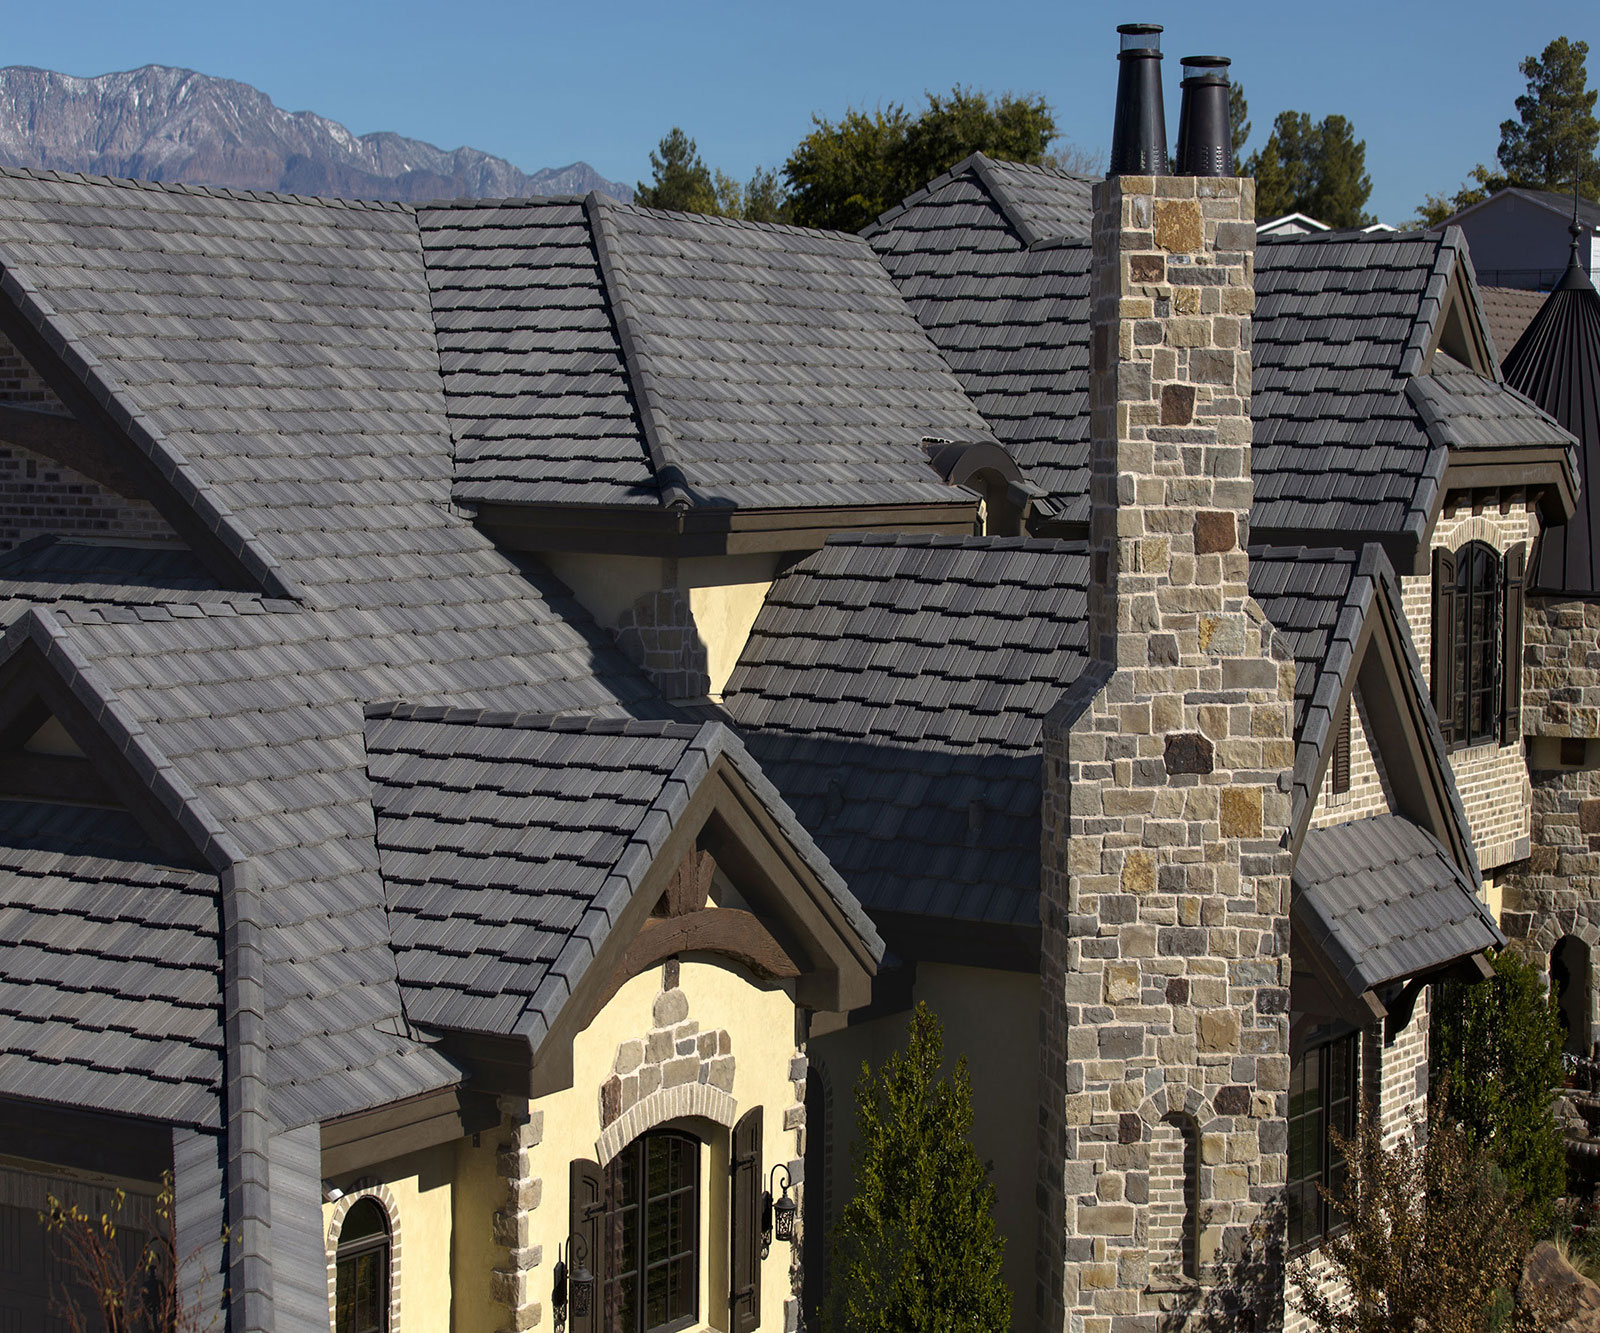 Eagle Tile Roof Bel Air Color Brown Gray Range The Roofing Pany Re Repair Storm Damage